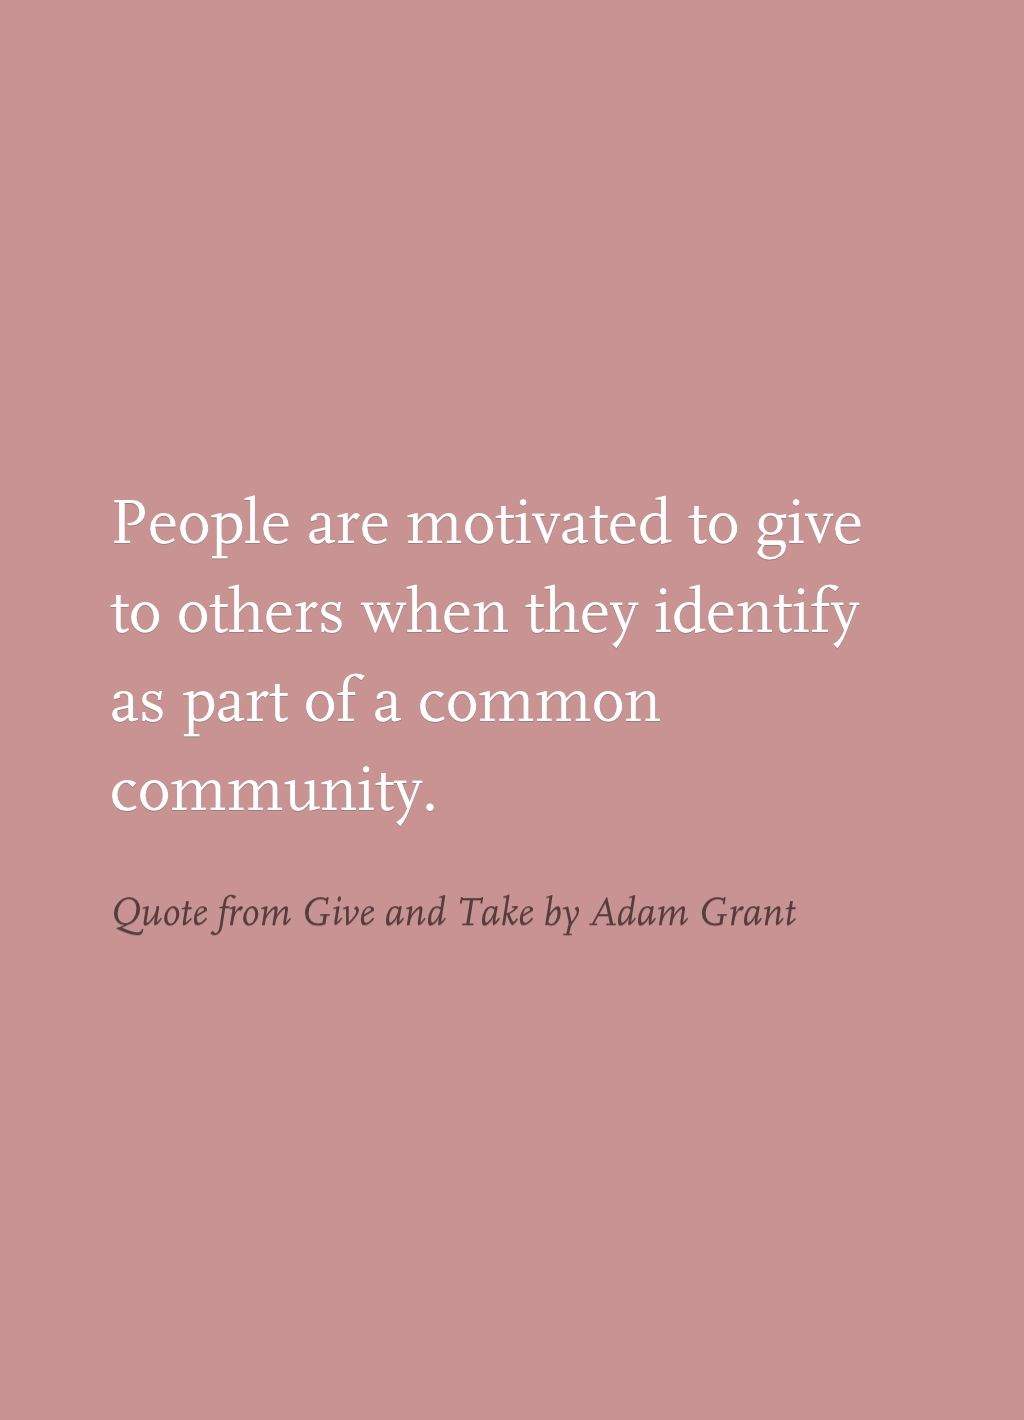 Quote from Give and Take by Adam Grant